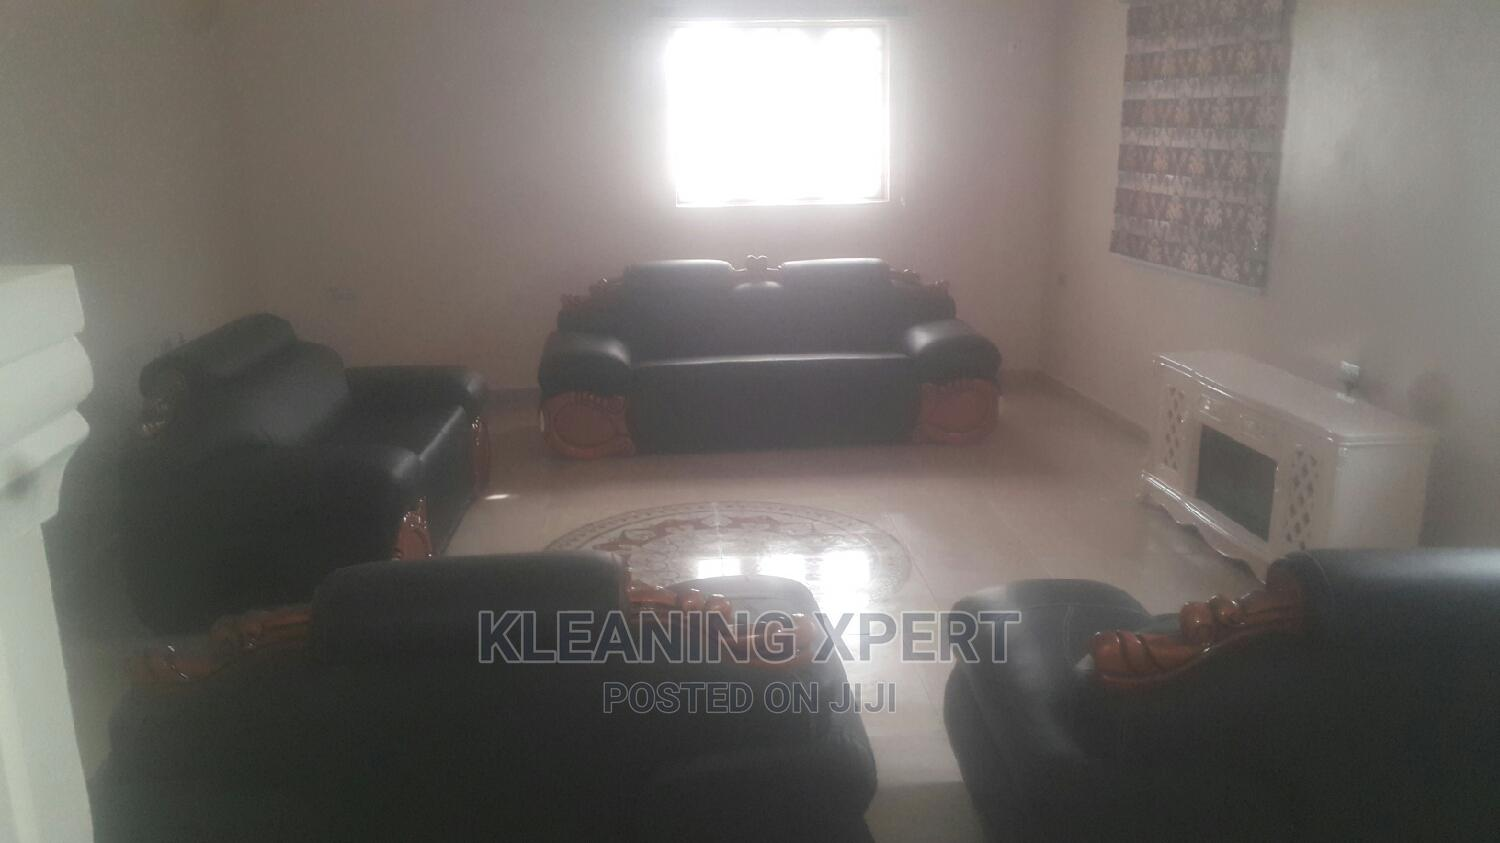 House Cleaning Services   Cleaning Services for sale in Tarkwa Bay Island, Lagos State, Nigeria